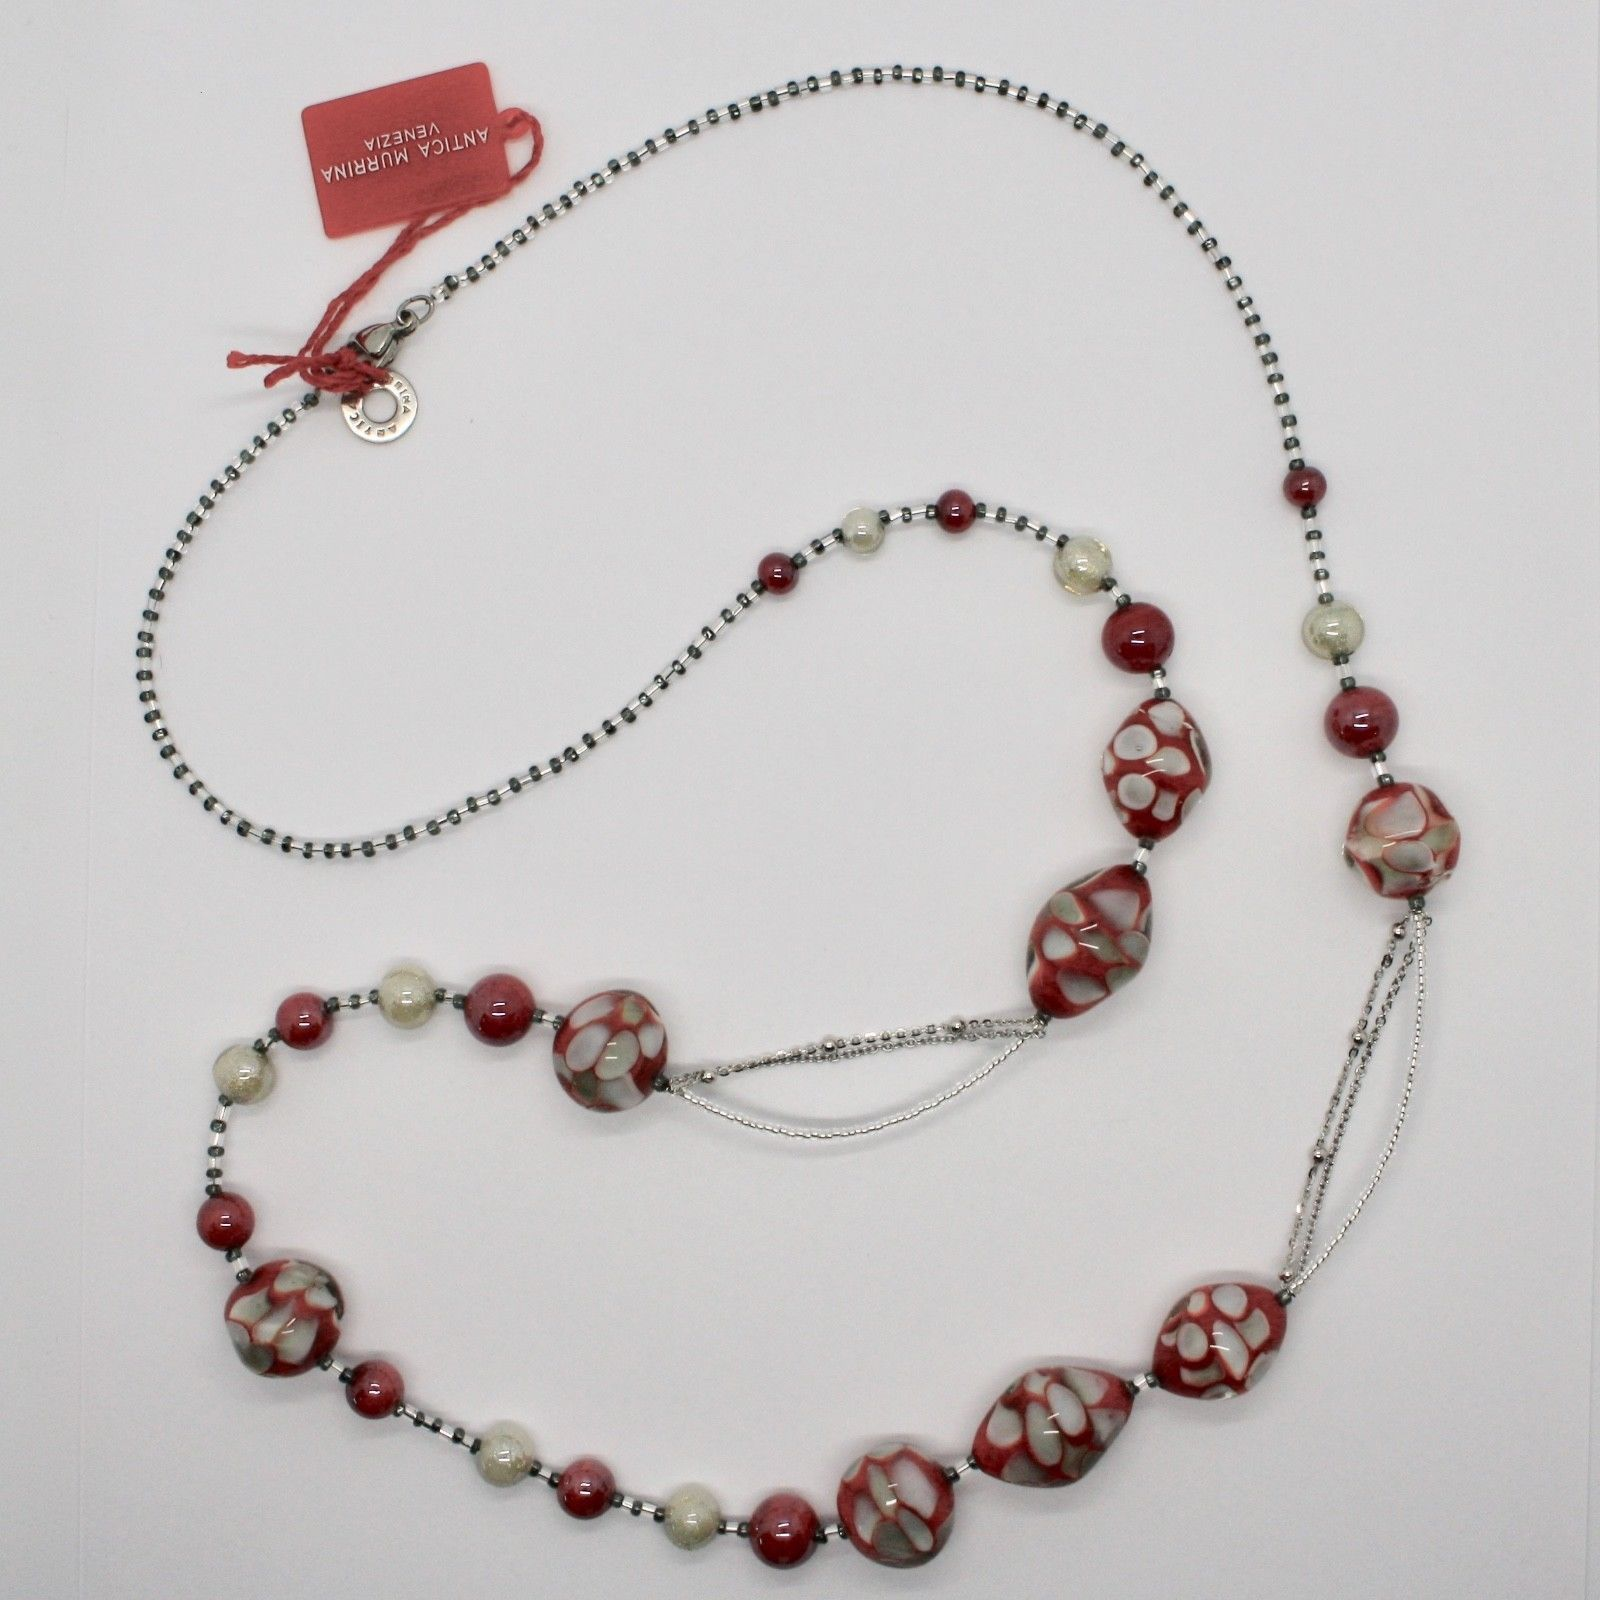 ANTICA MURRINA VENEZIA NECKLACE WITH MURANO GLASS RED BEIGE WHITE COA09A31